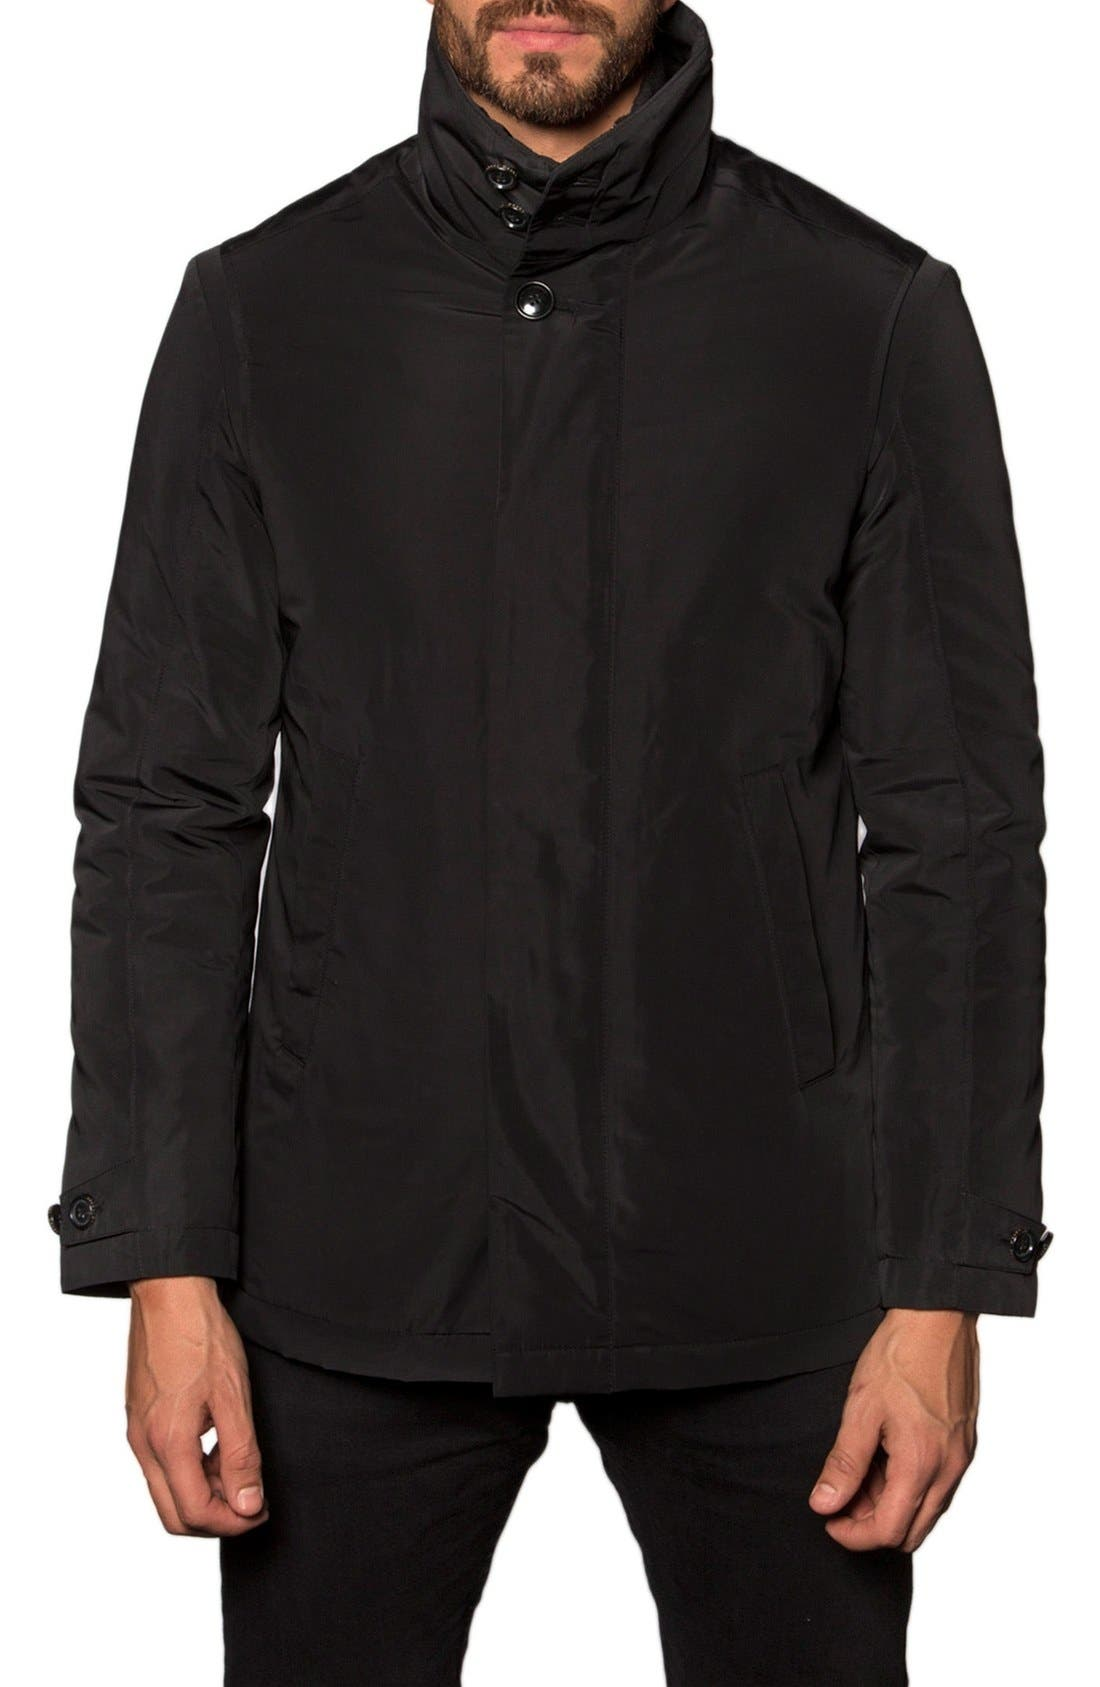 Rome Insulated Jacket,                             Main thumbnail 1, color,                             001